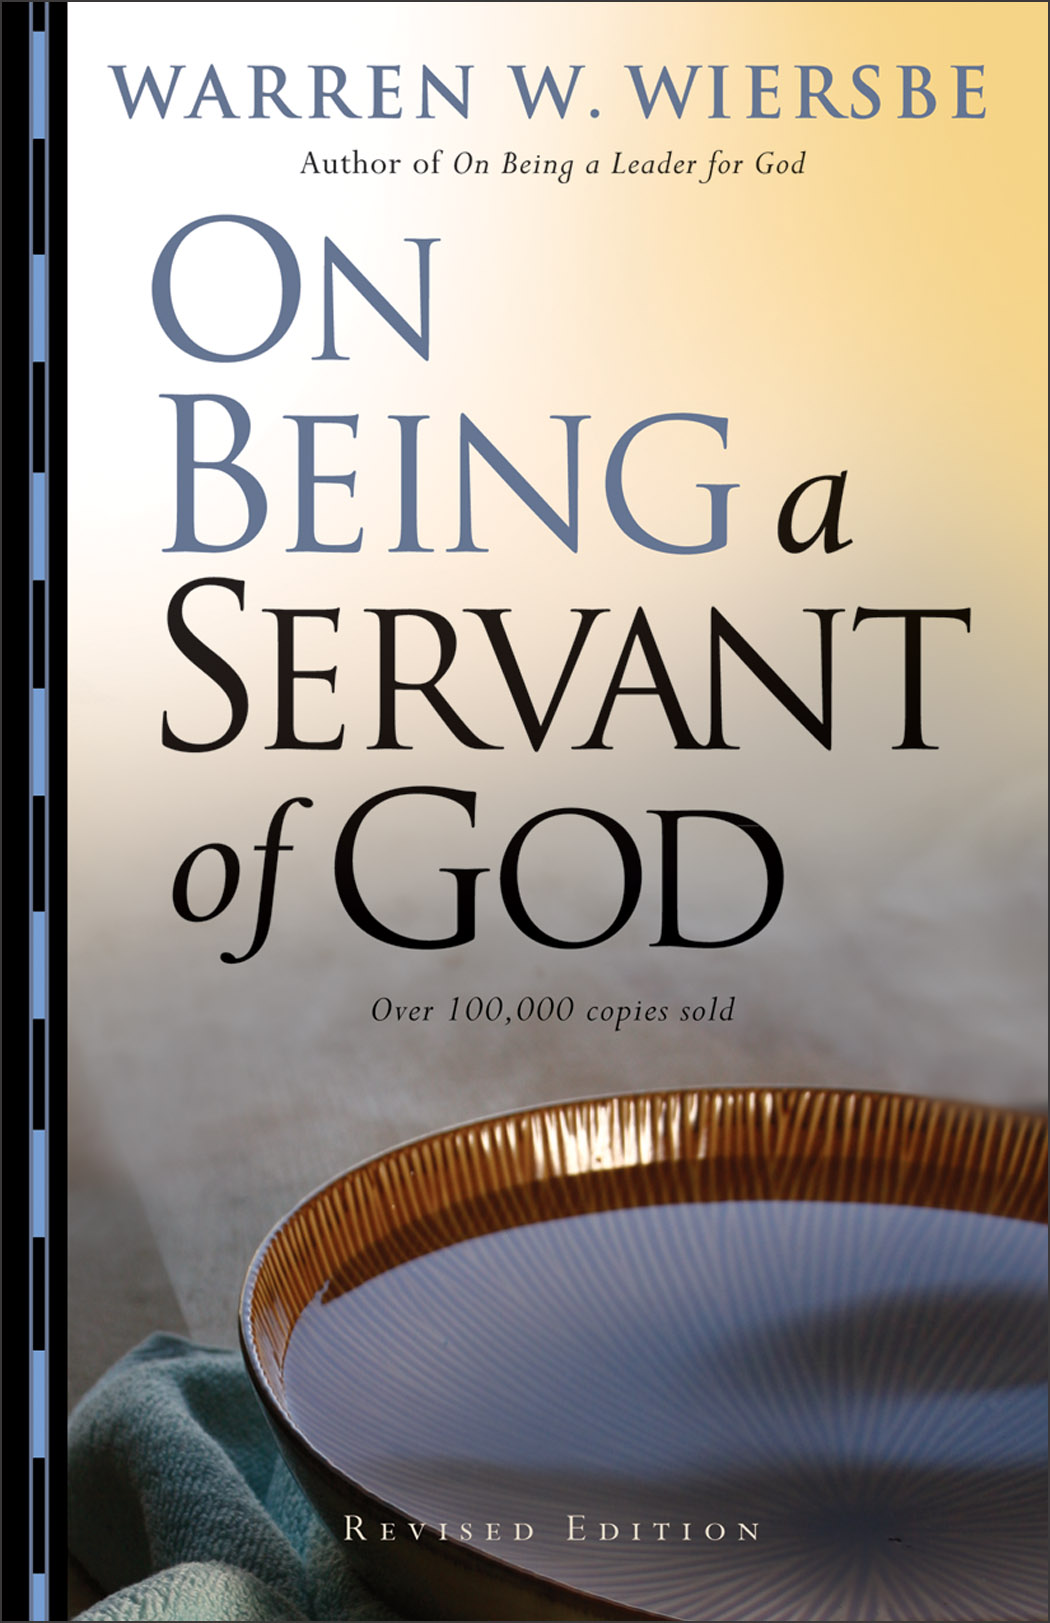 On Being a Servant of God by Warren Wiersbe